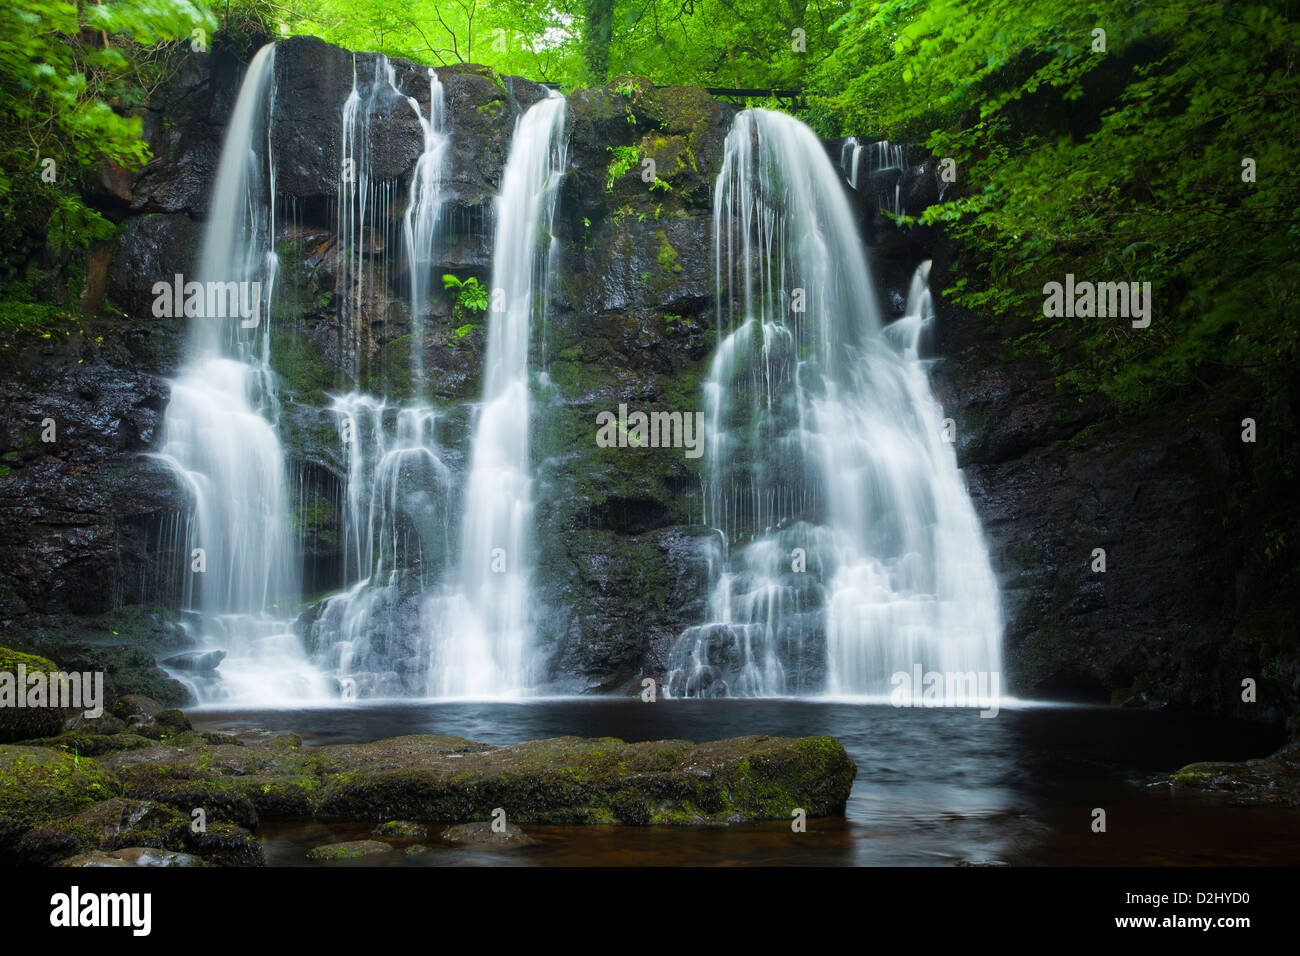 Ess-Na-Crub Waterfall, Glenariff Forest Park, County Antrim, Northern Ireland. - Stock Image